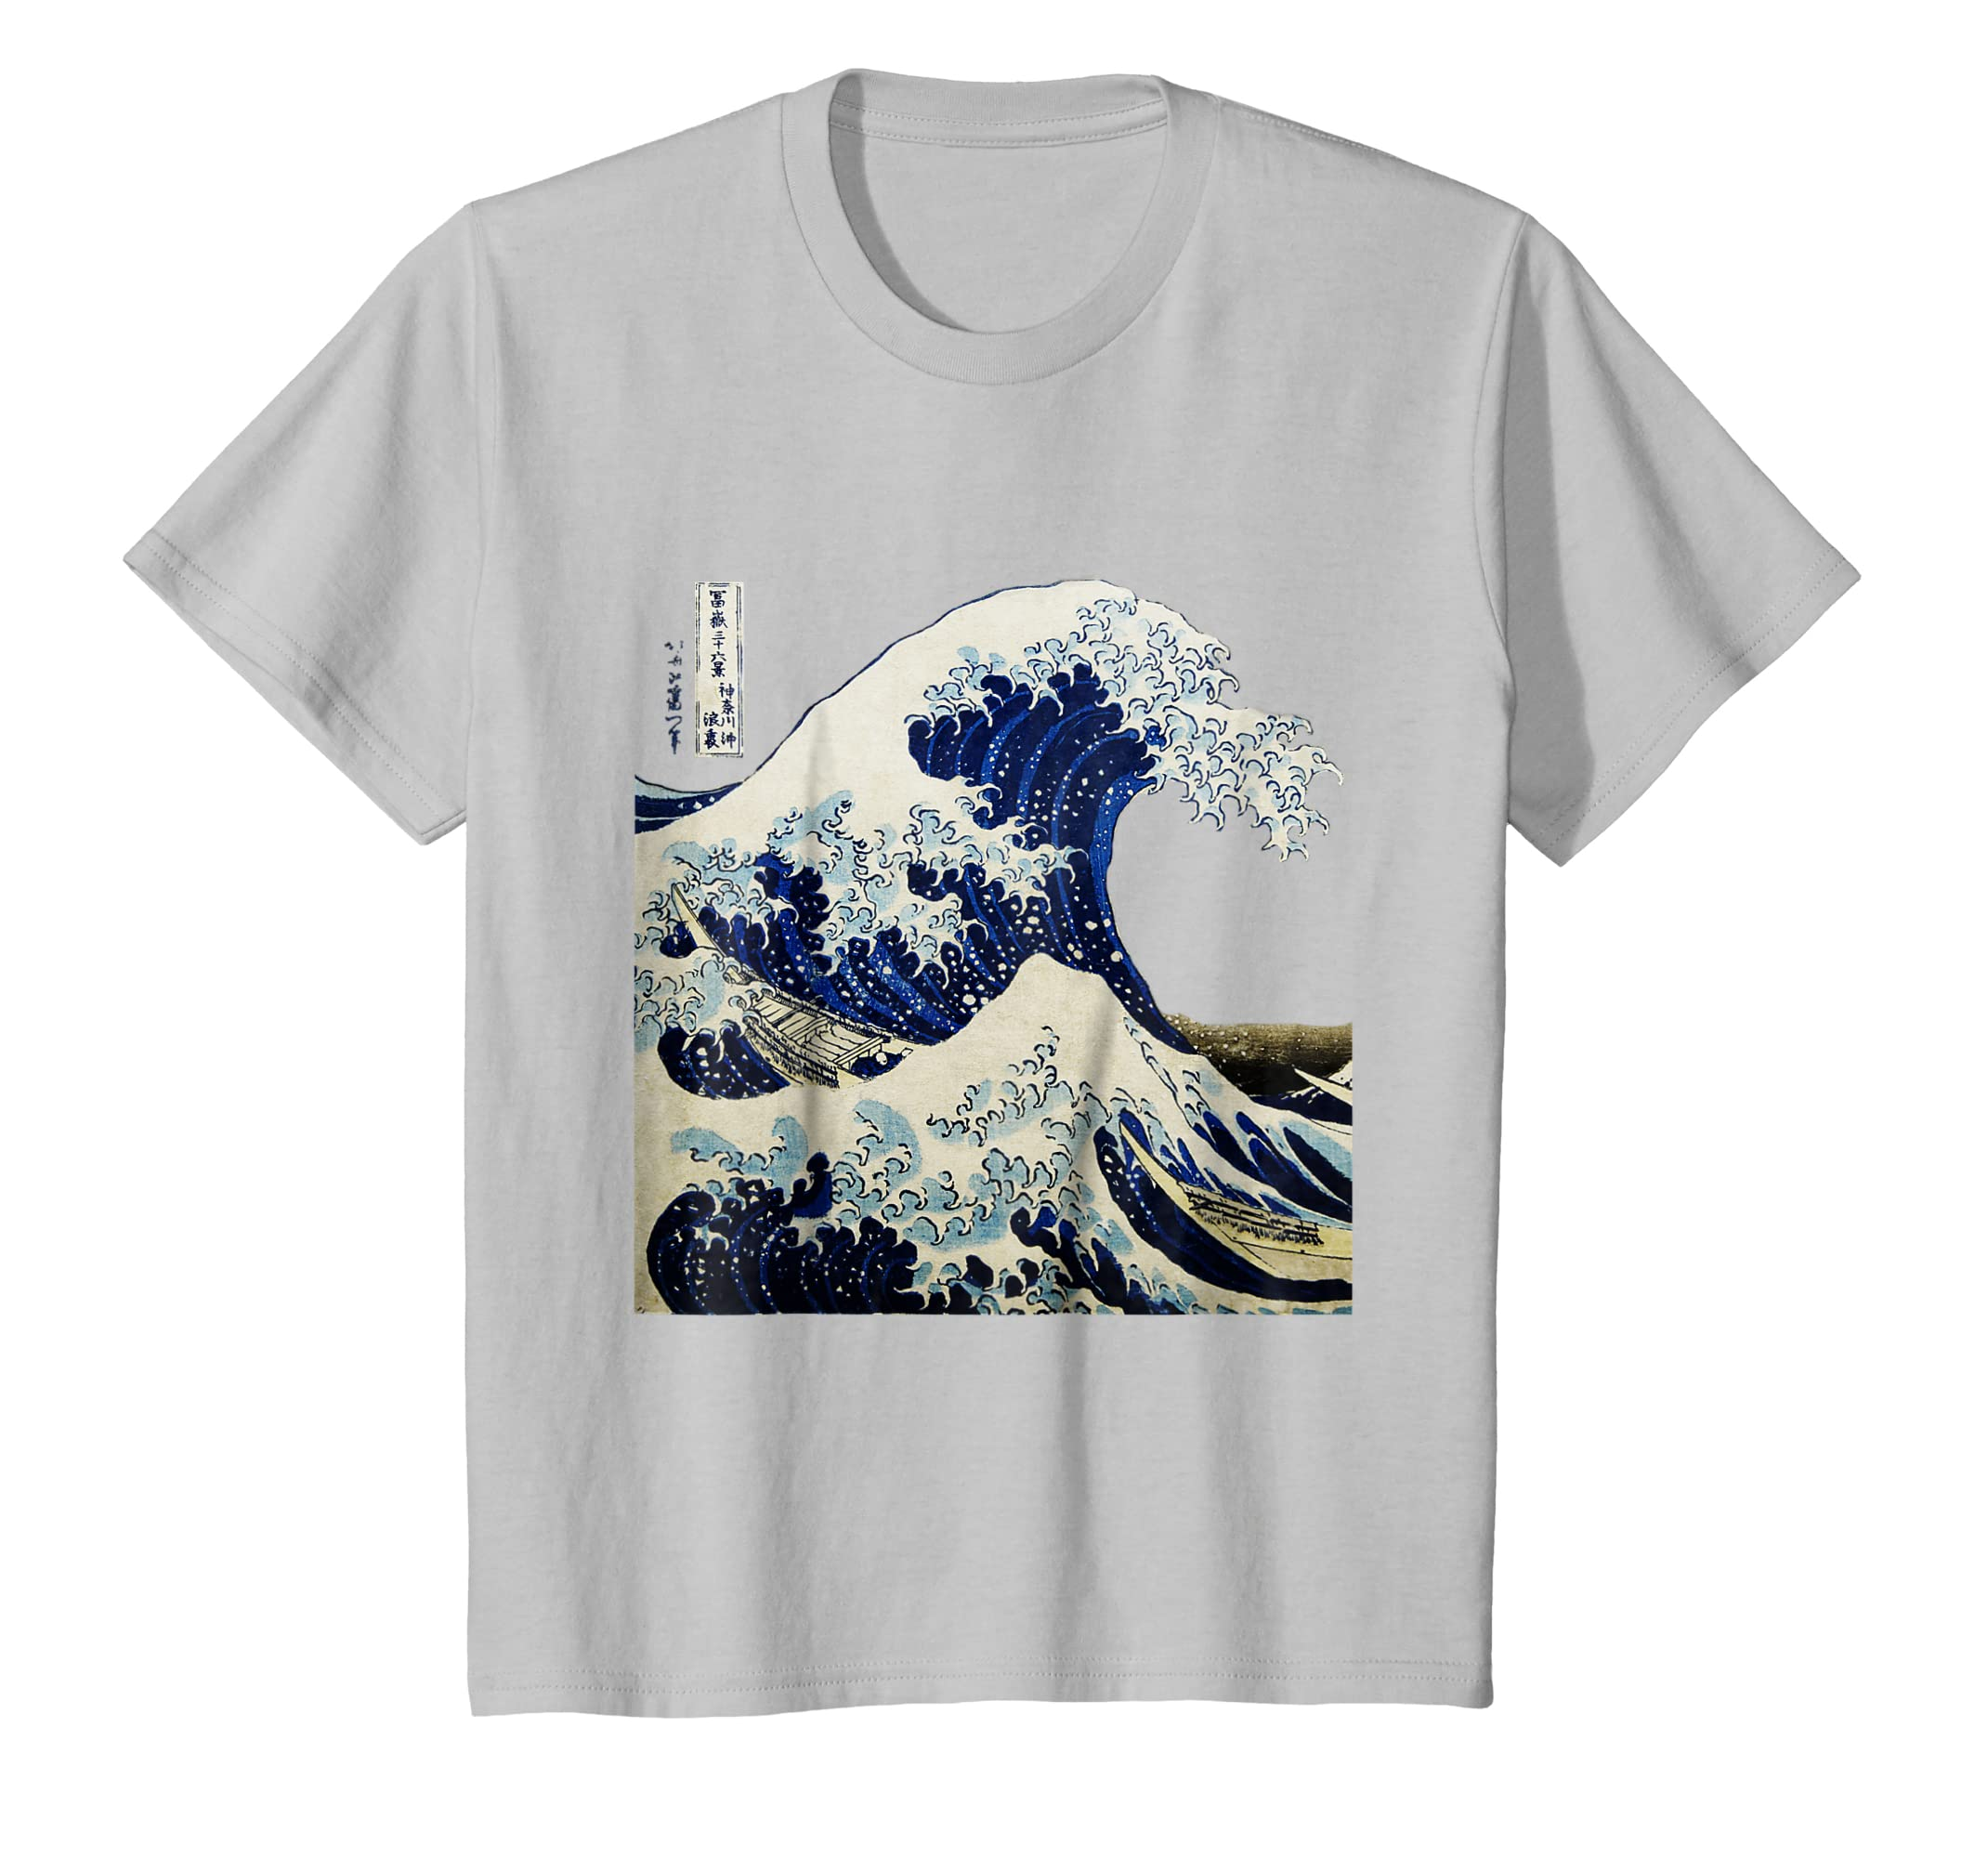 7bde8524b2e Amazon.com  Kanagawa Japanese The great wave T shirt  Clothing